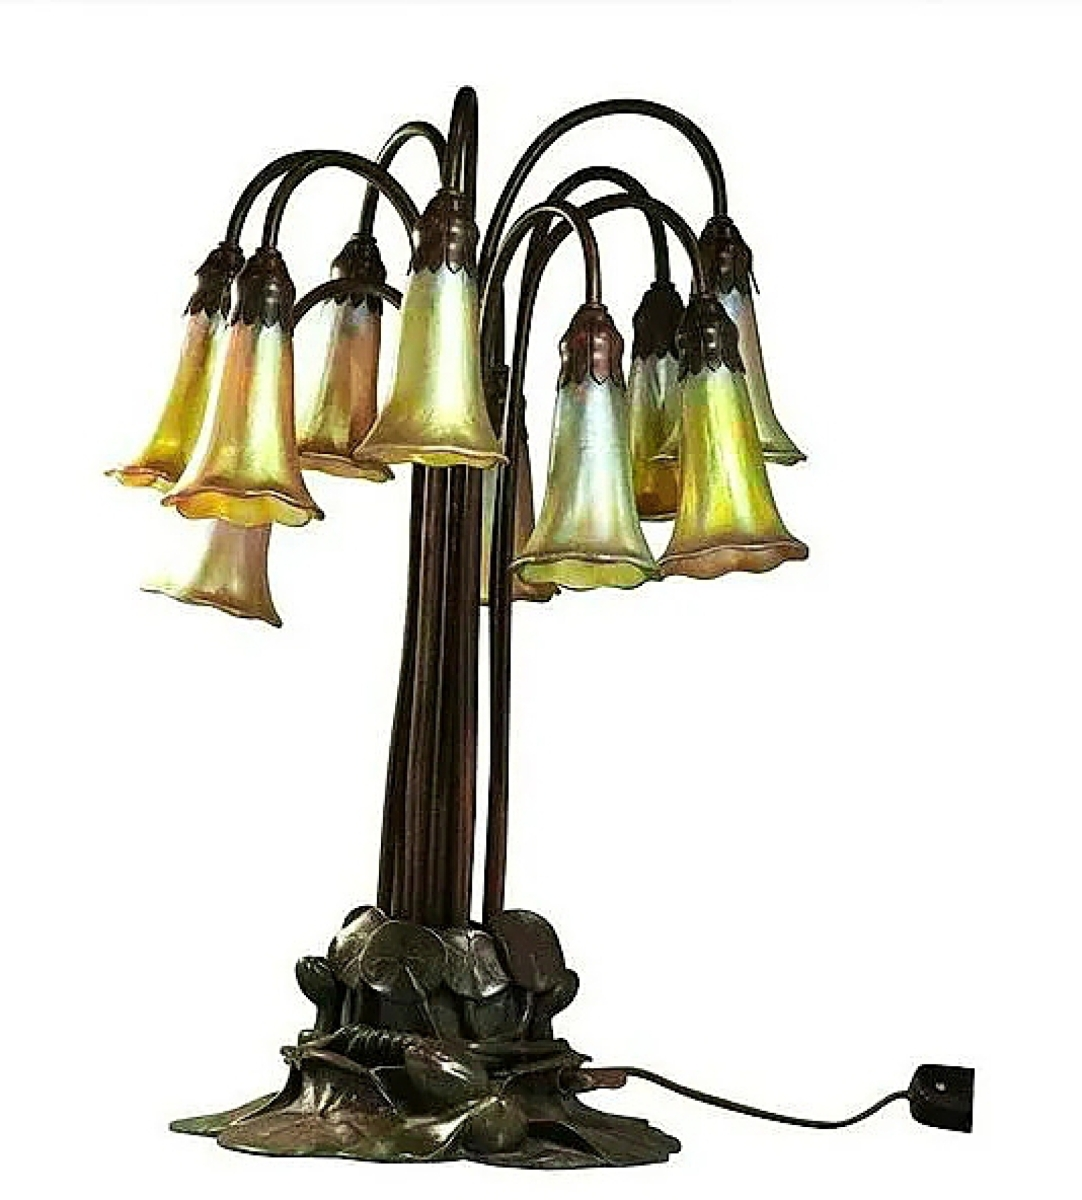 Tiffany Studios collectors were drawn to a 10-light Lily lamp with signed favrile shades and bronze base that took $10,625.